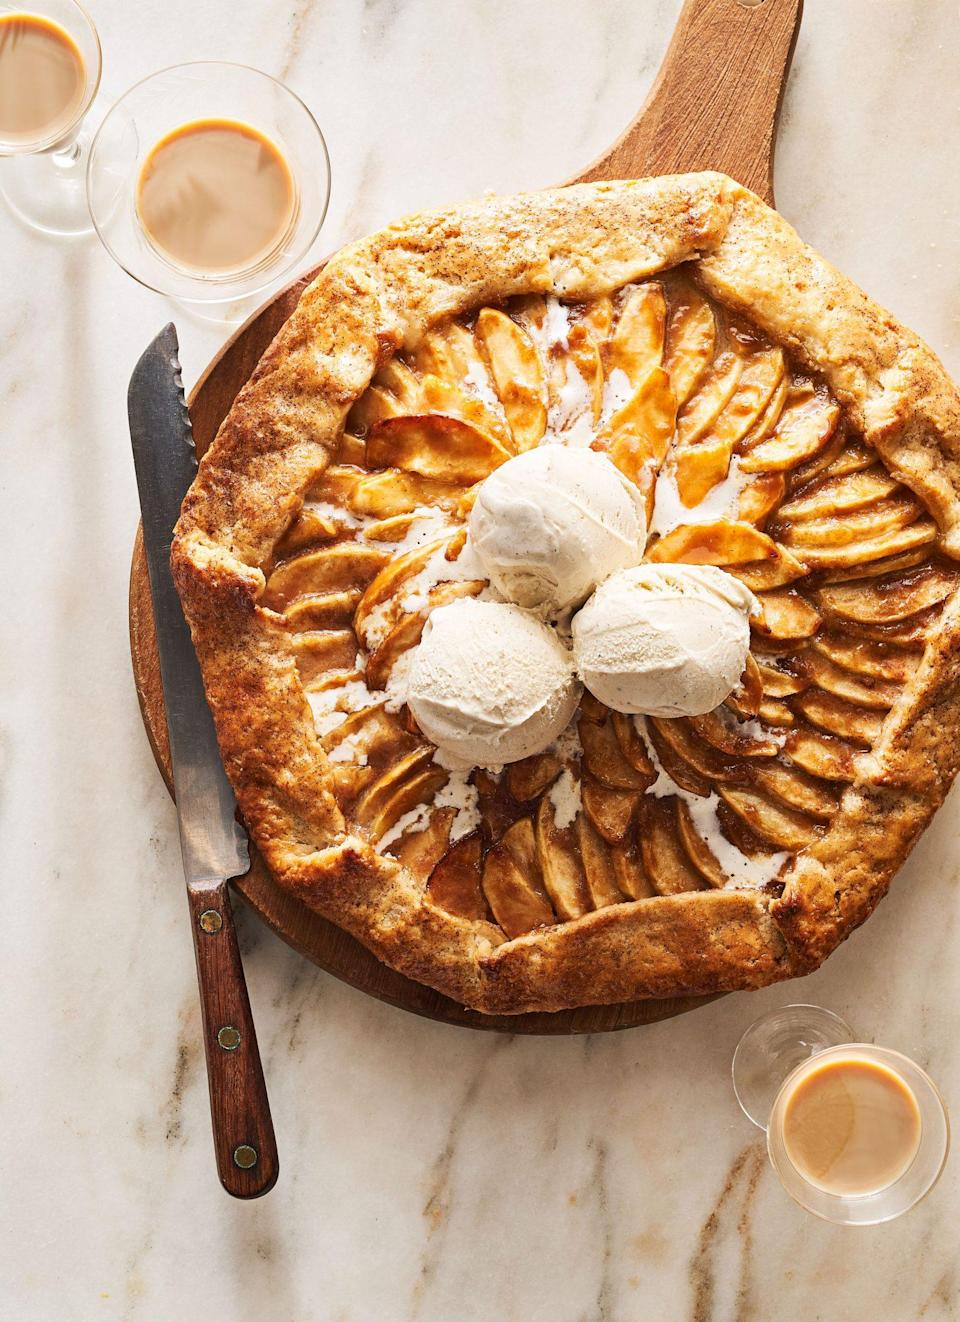 "<p><strong>Recipe: </strong><a href=""https://www.southernliving.com/recipes/jerrelle-guy-salted-irish-cream-apple-crostata"" rel=""nofollow noopener"" target=""_blank"" data-ylk=""slk:Salted Irish Cream Apple Crostata"" class=""link rapid-noclick-resp""><strong>Salted Irish Cream Apple Crostata</strong></a></p> <p><a href=""https://www.southernliving.com/culture/jerrelle-guy-has-never-liked-measuring-cups"" rel=""nofollow noopener"" target=""_blank"" data-ylk=""slk:Jerrelle Guy"" class=""link rapid-noclick-resp"">Jerrelle Guy</a> dreamed up this gorgeous fall dessert for us, and it was an immediate hit with readers. The good news for novice bakers is that the flaky crust is so much easier to make than a homemade pie crust. If that's not enough to convince you, one reader said it, ""might be the VERY BEST thing I've ever tasted!!""</p>"